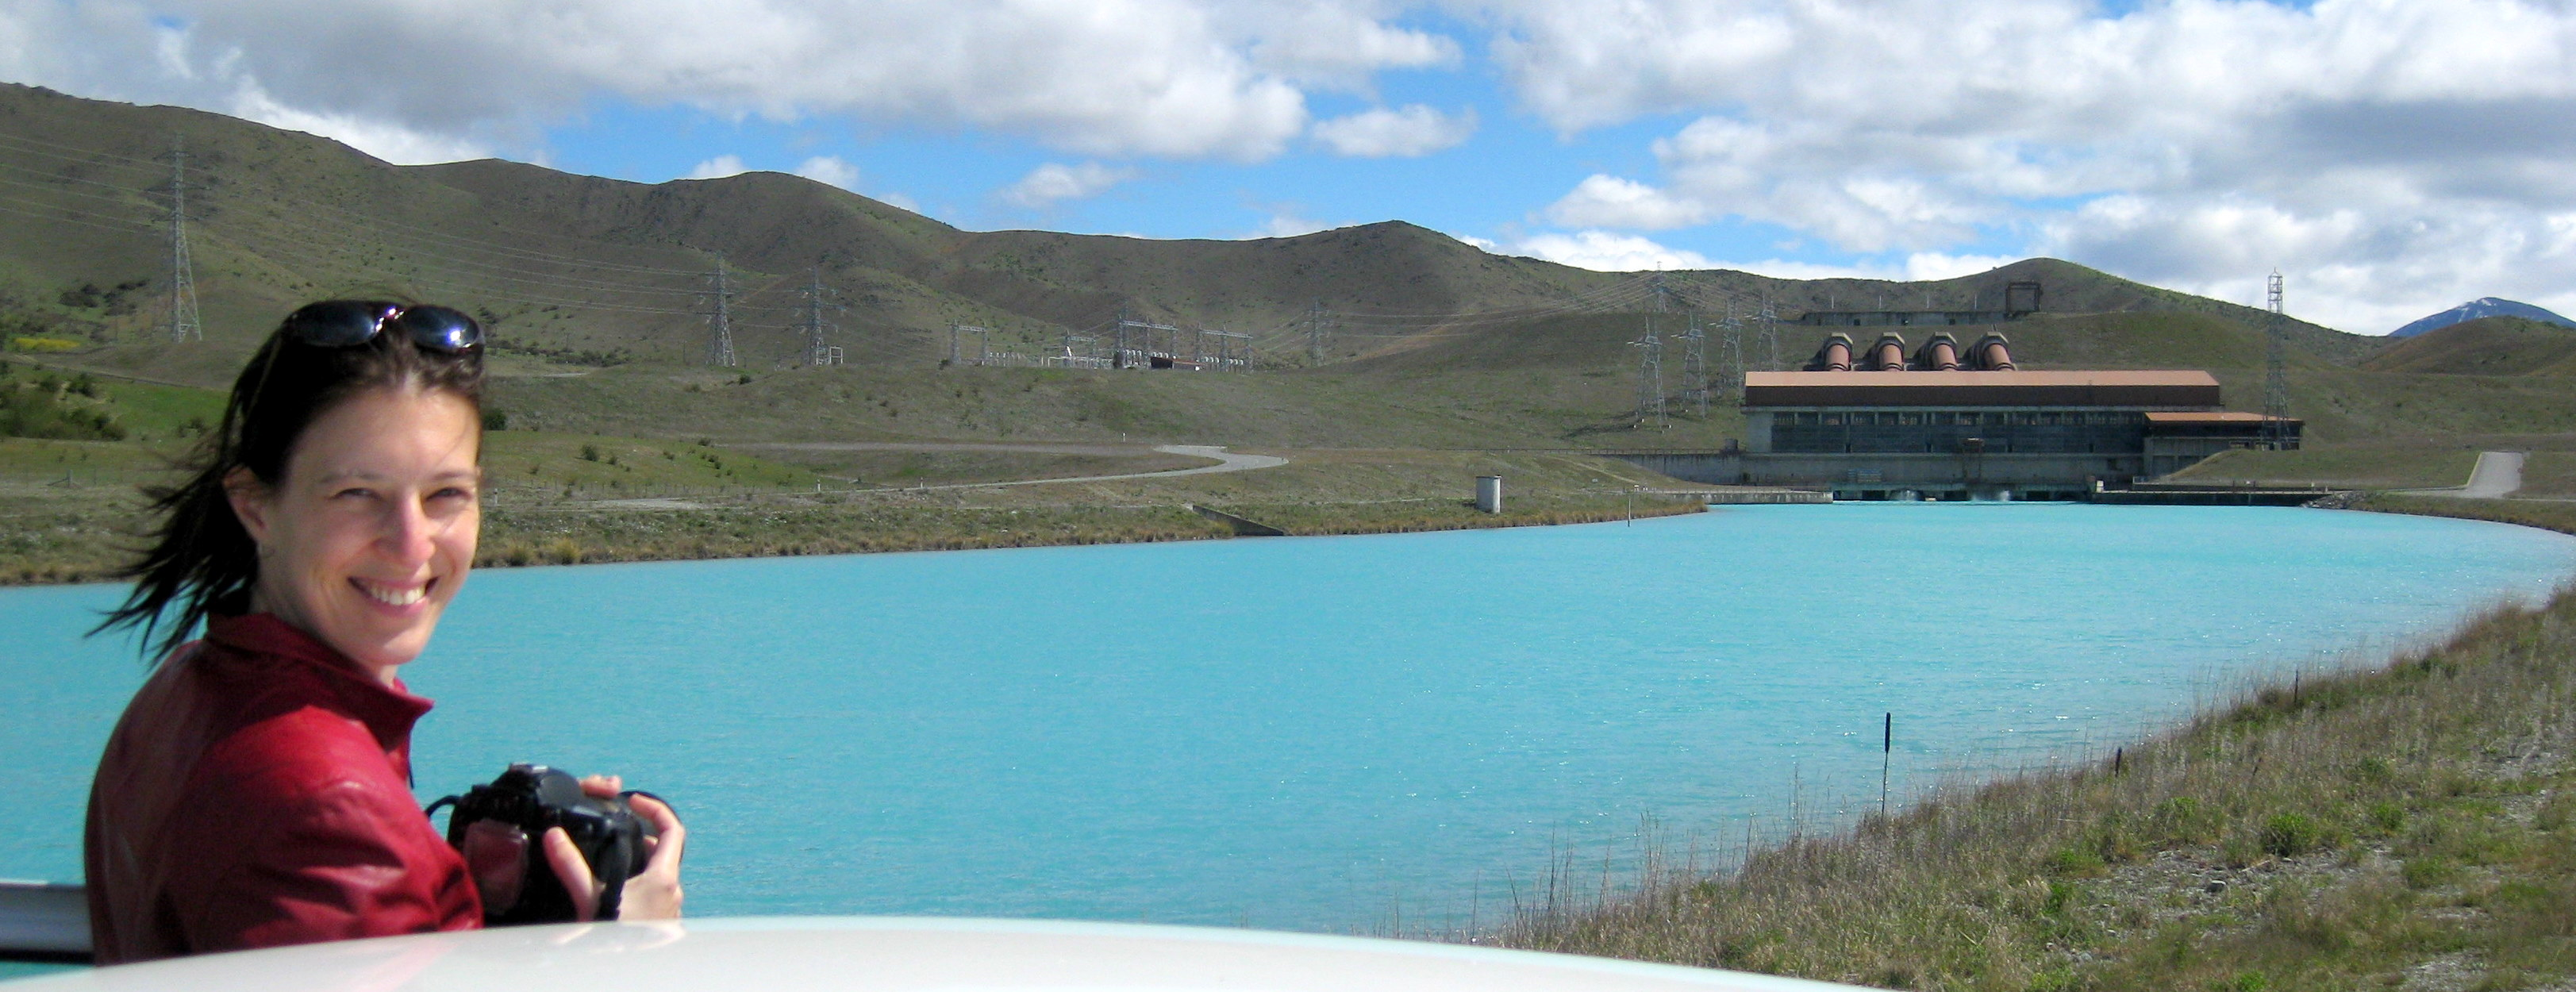 Ohau hydro power station (New Zealand)